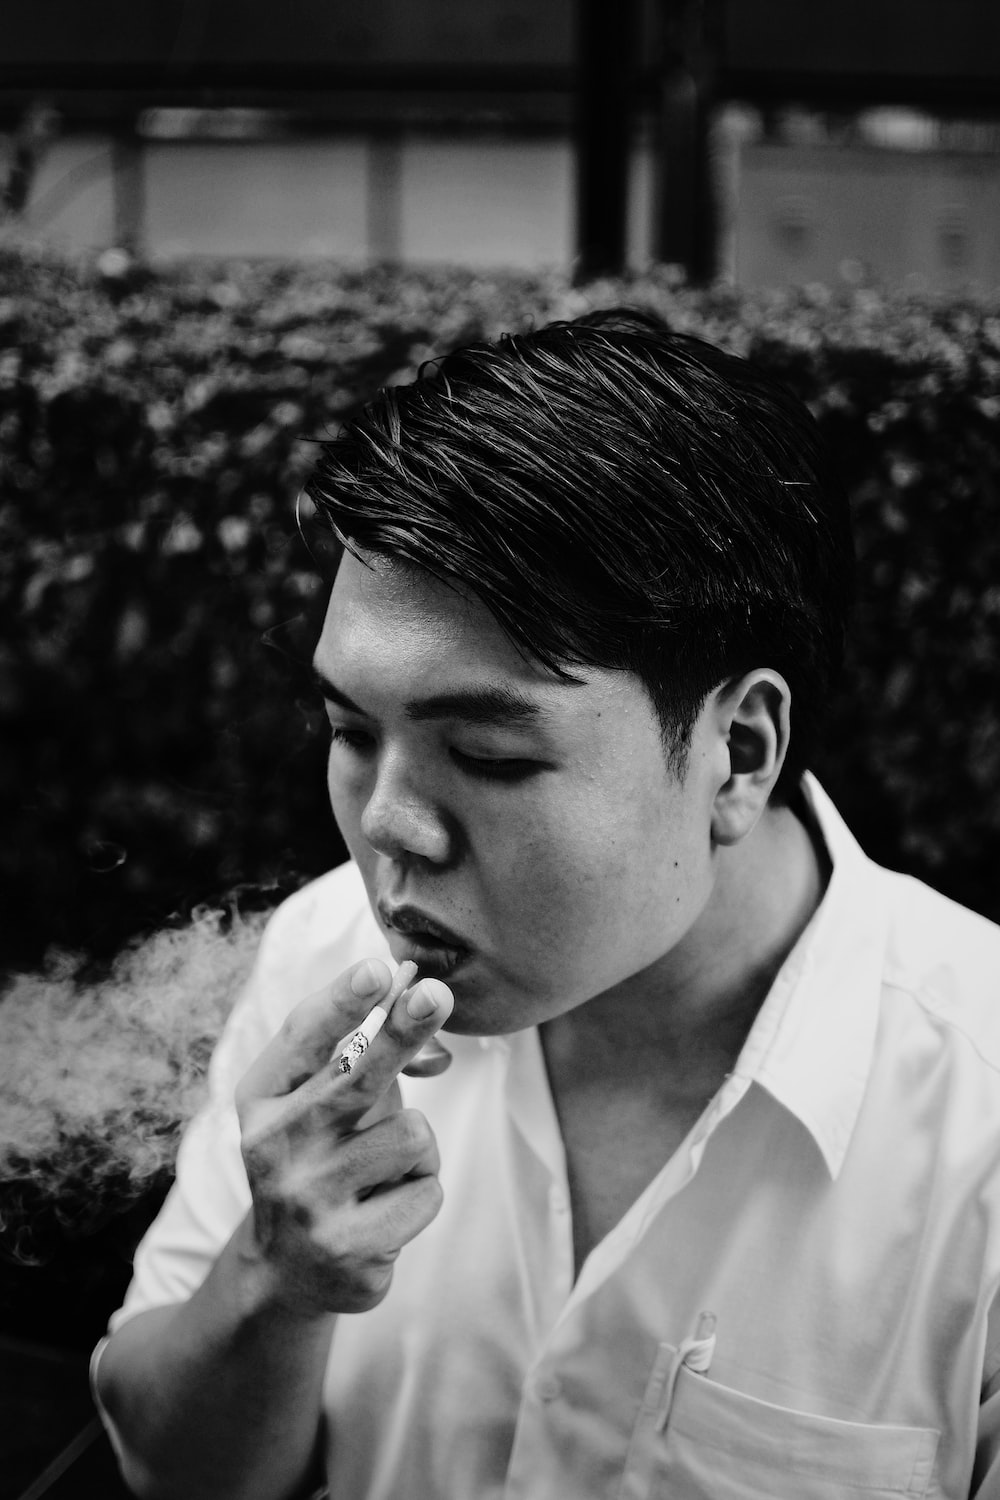 grayscale photography of man smoking beside plant